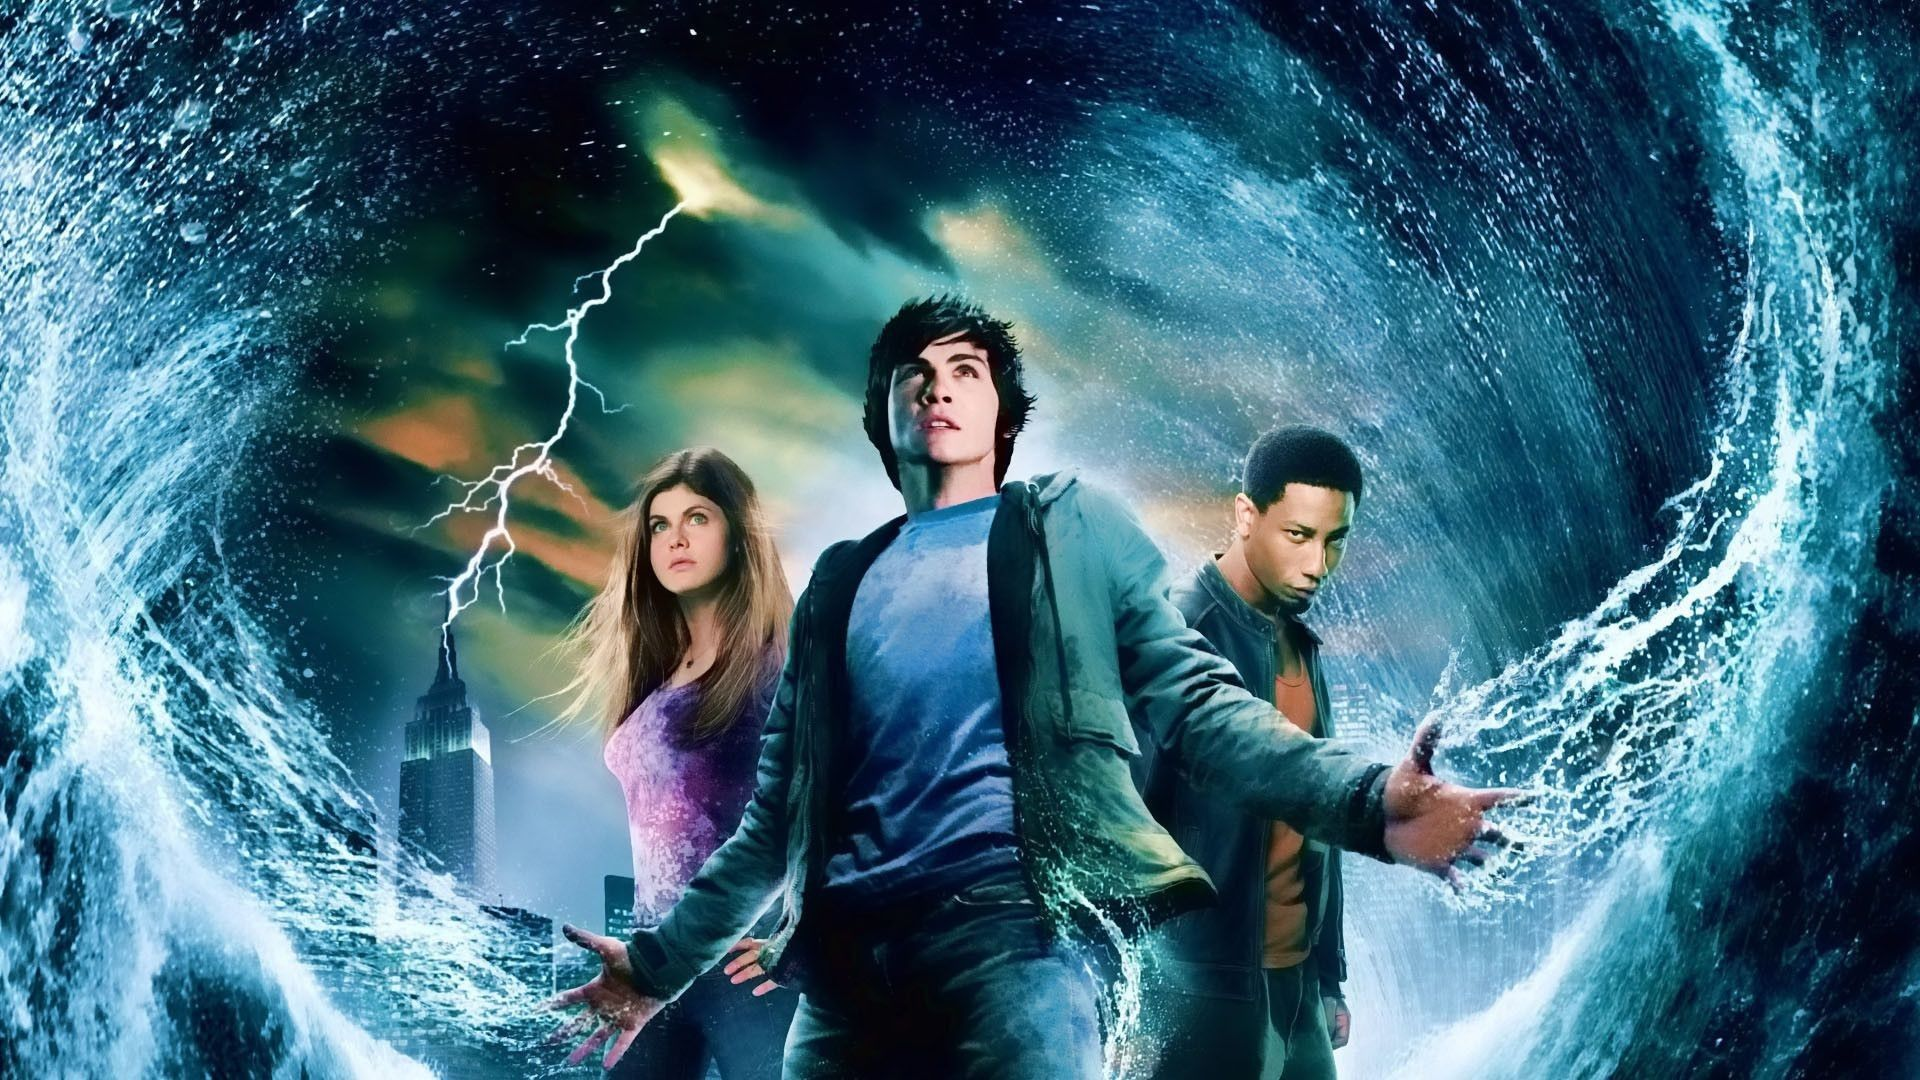 Percy Jackson Wallpapers Top Free Percy Jackson Backgrounds Wallpaperaccess